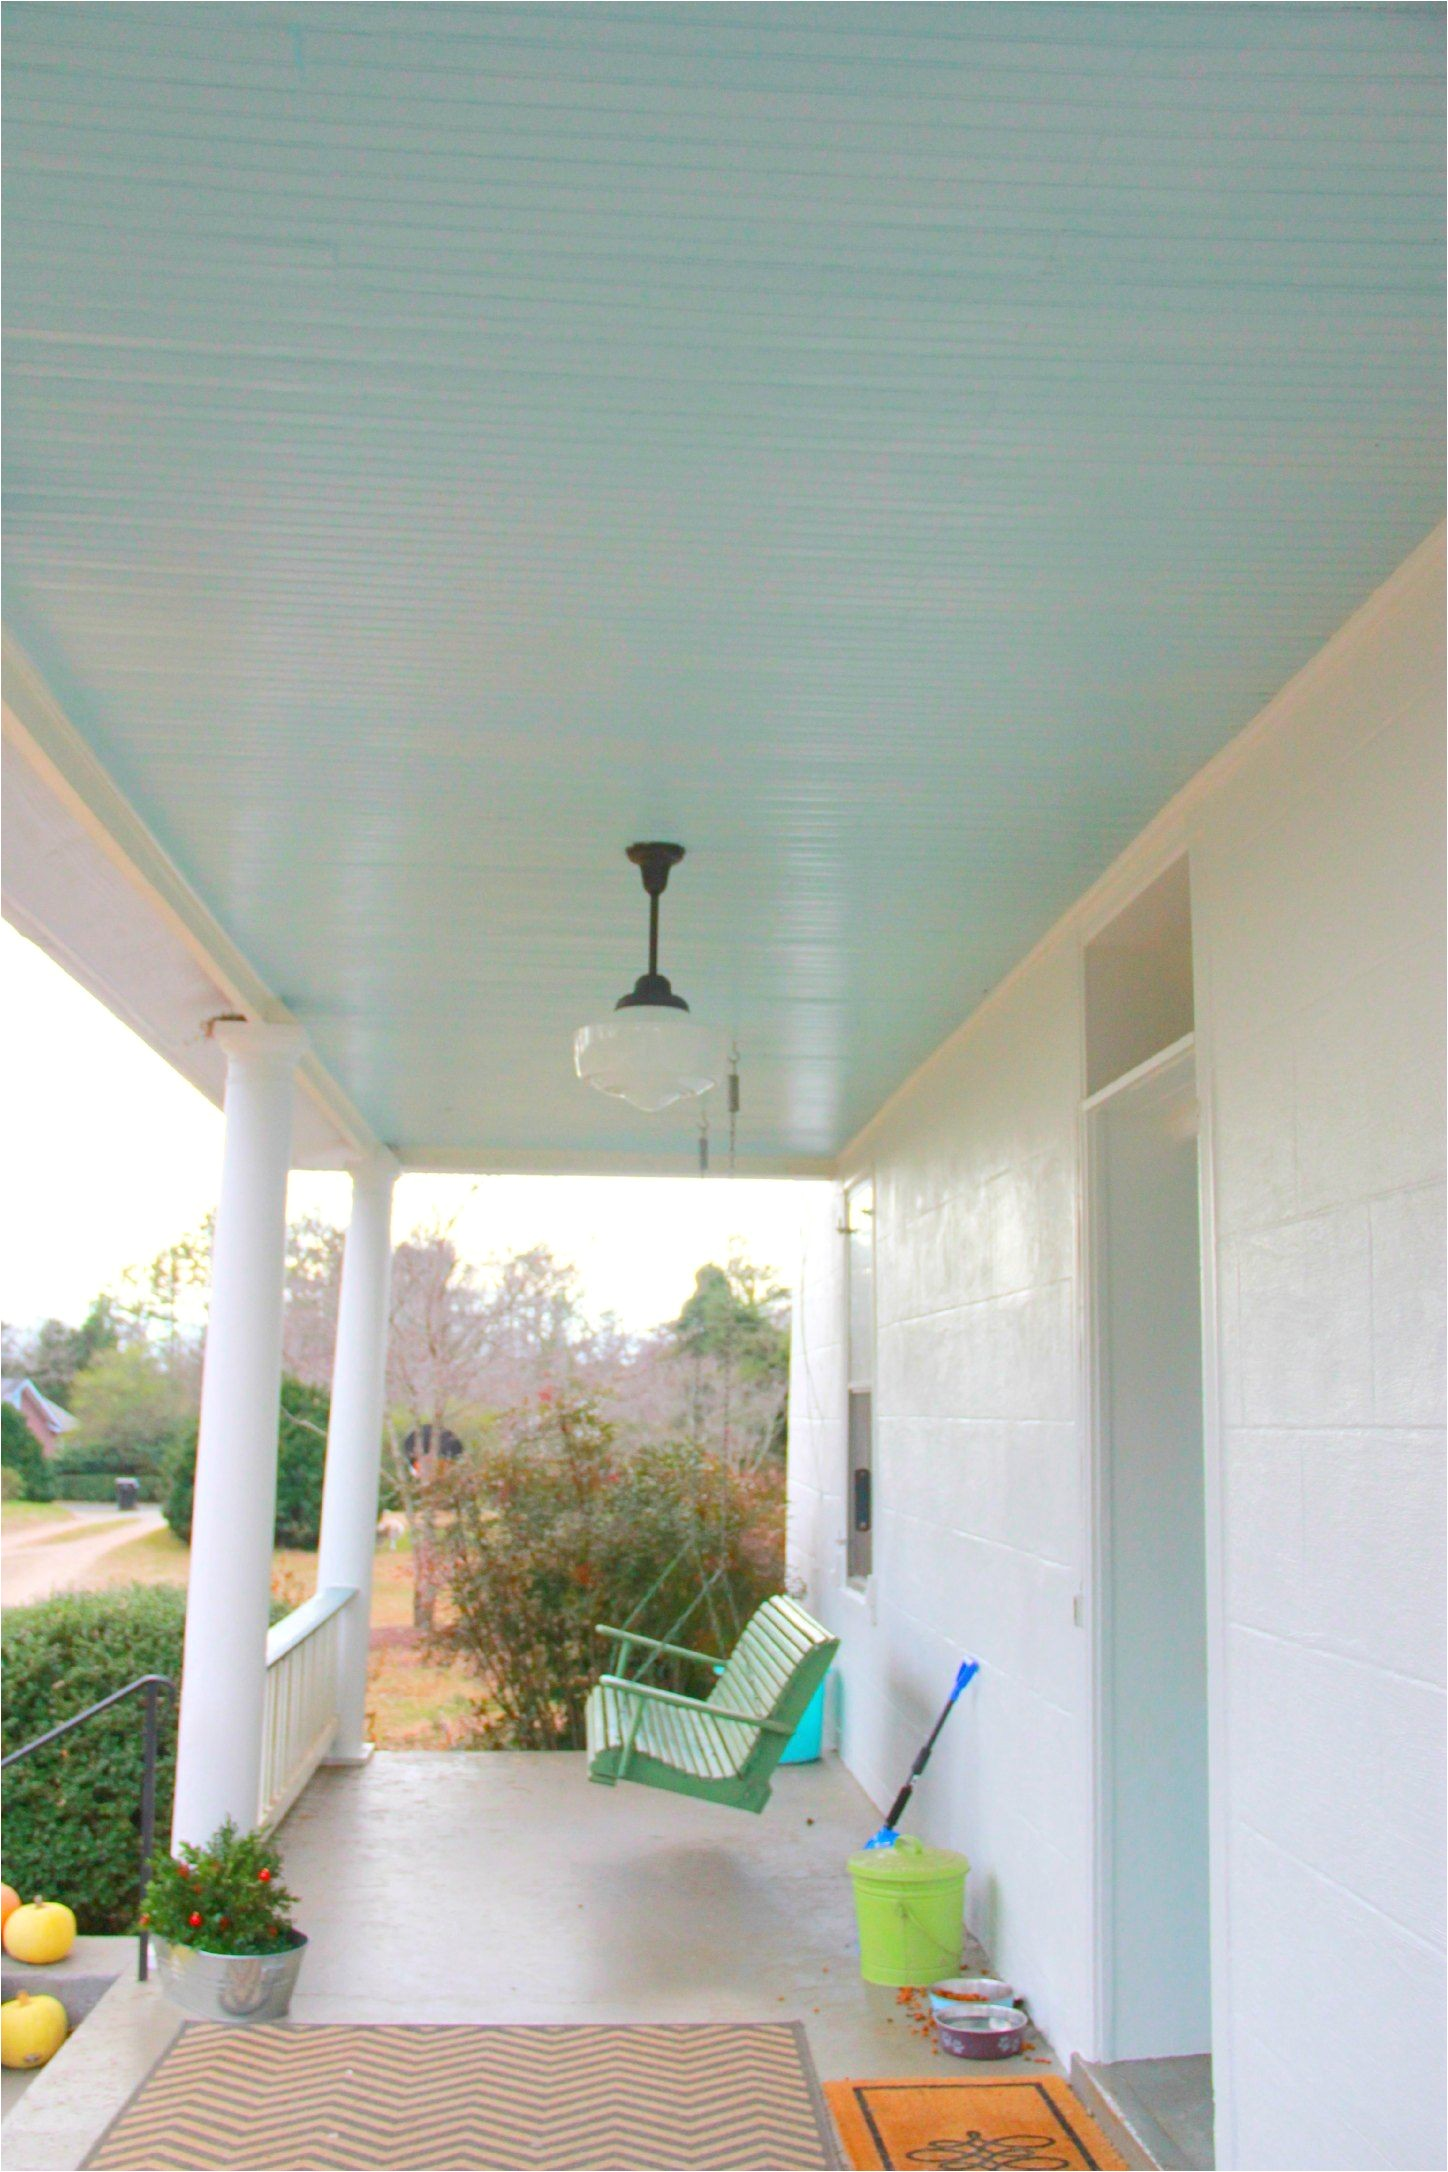 benjamin moore birds egg painted on the ceiling blues on the porch ceilings is an old slave tradition for warding off evil spirits